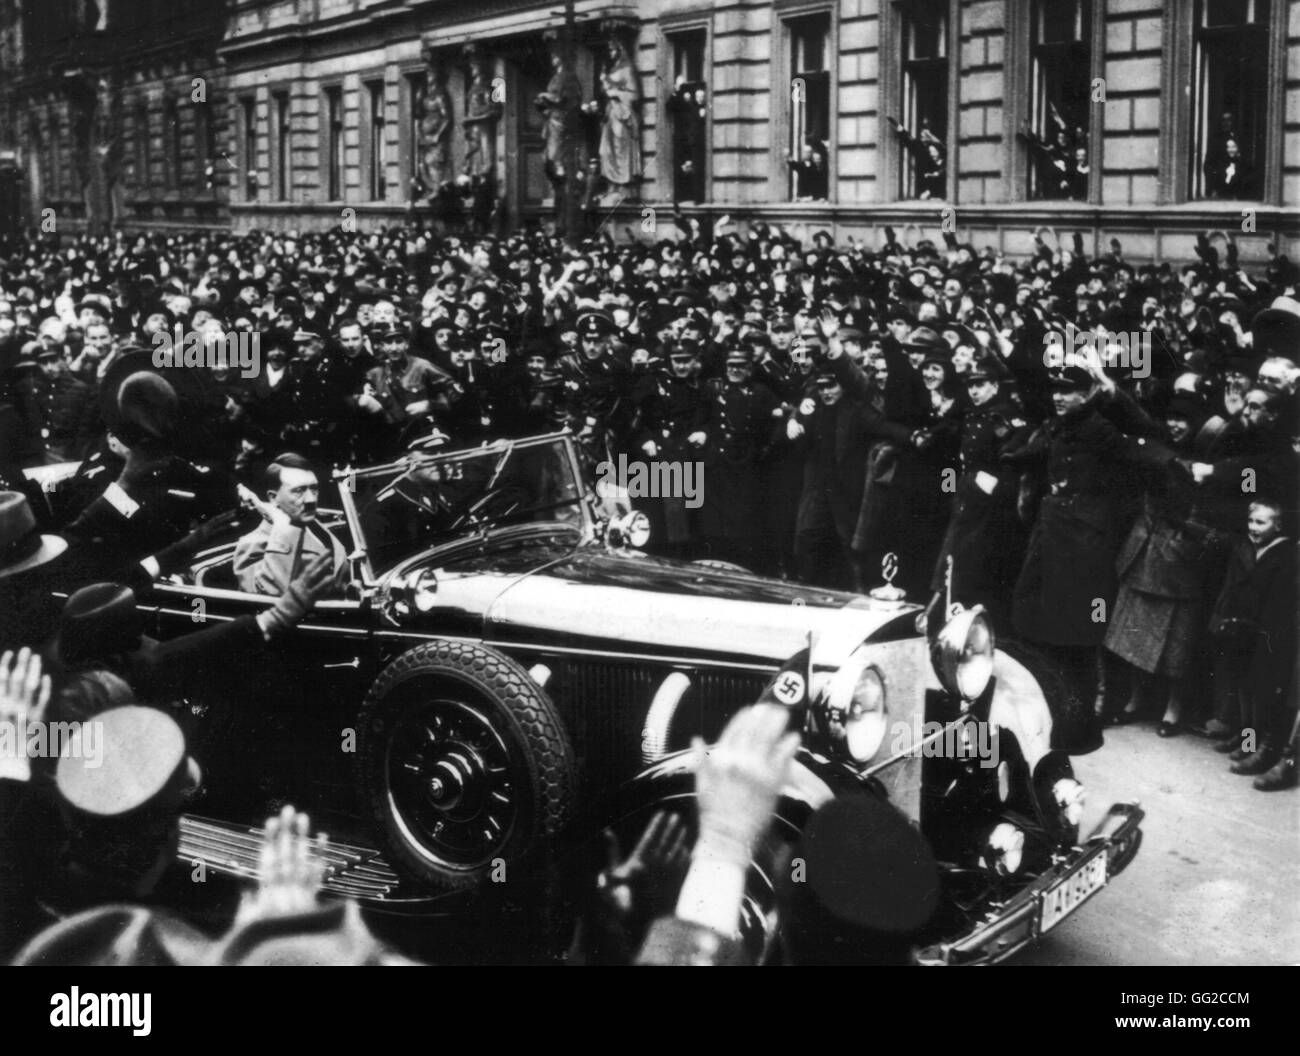 Hitler leaving the Reichstag through the cheering crowd January 30, 1934 Germany Paris. Bibliothèque nationale - Stock Image